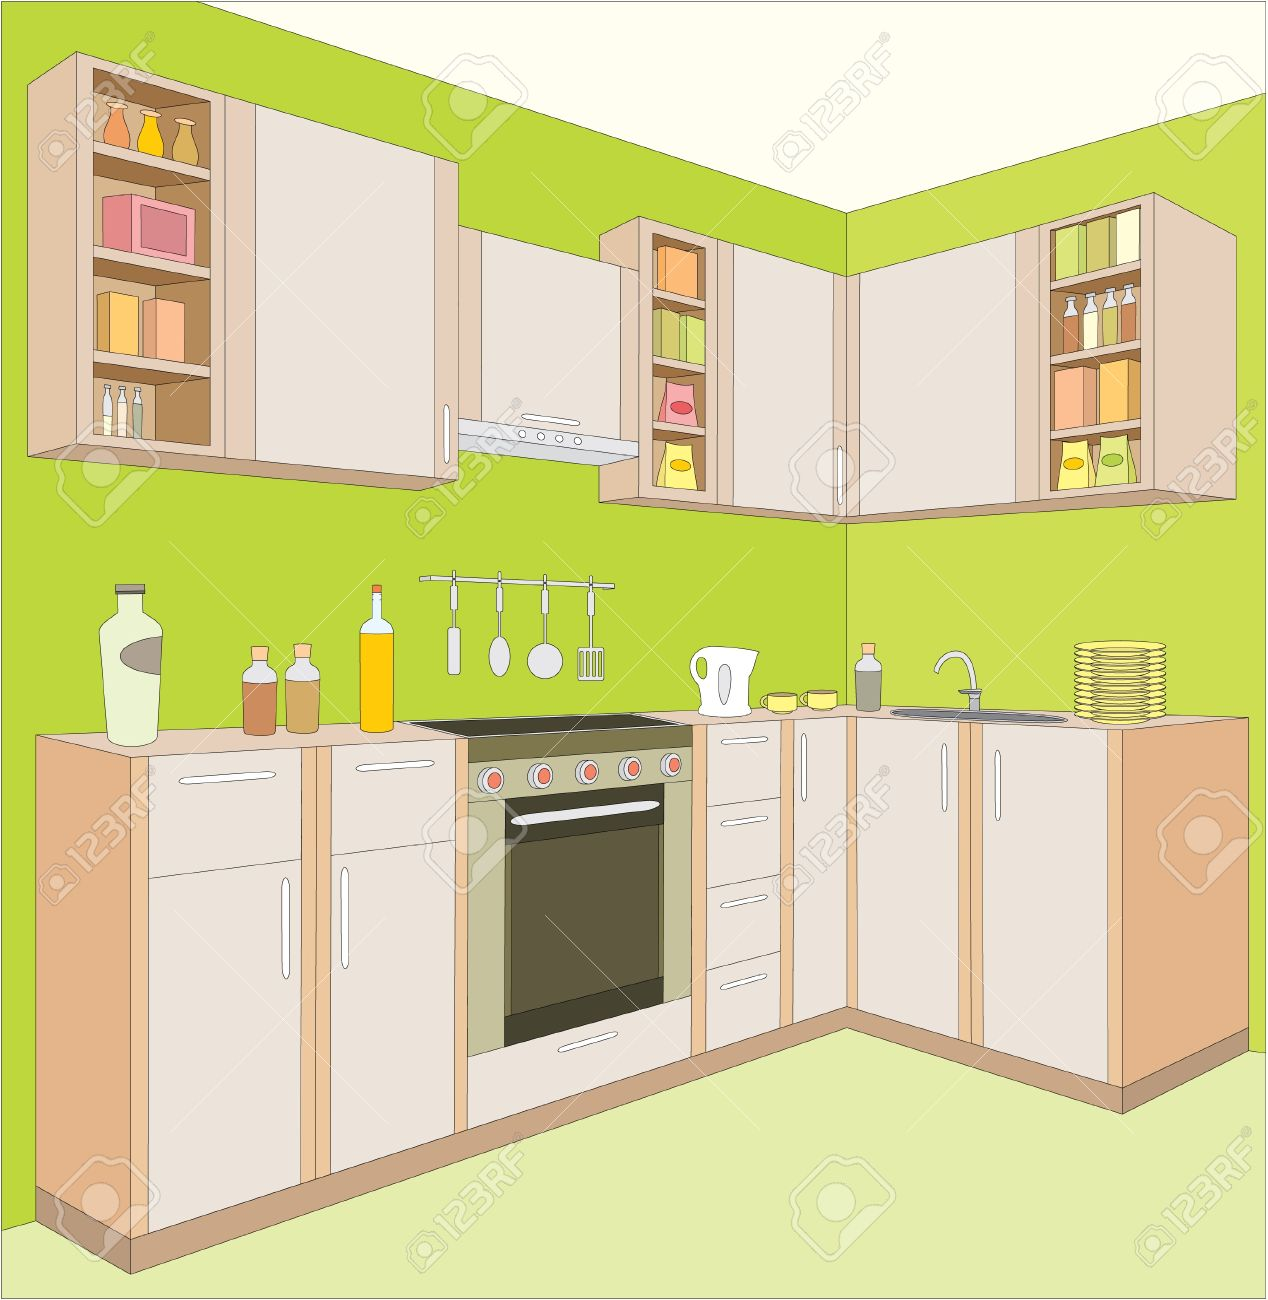 Clipart kitchen room.